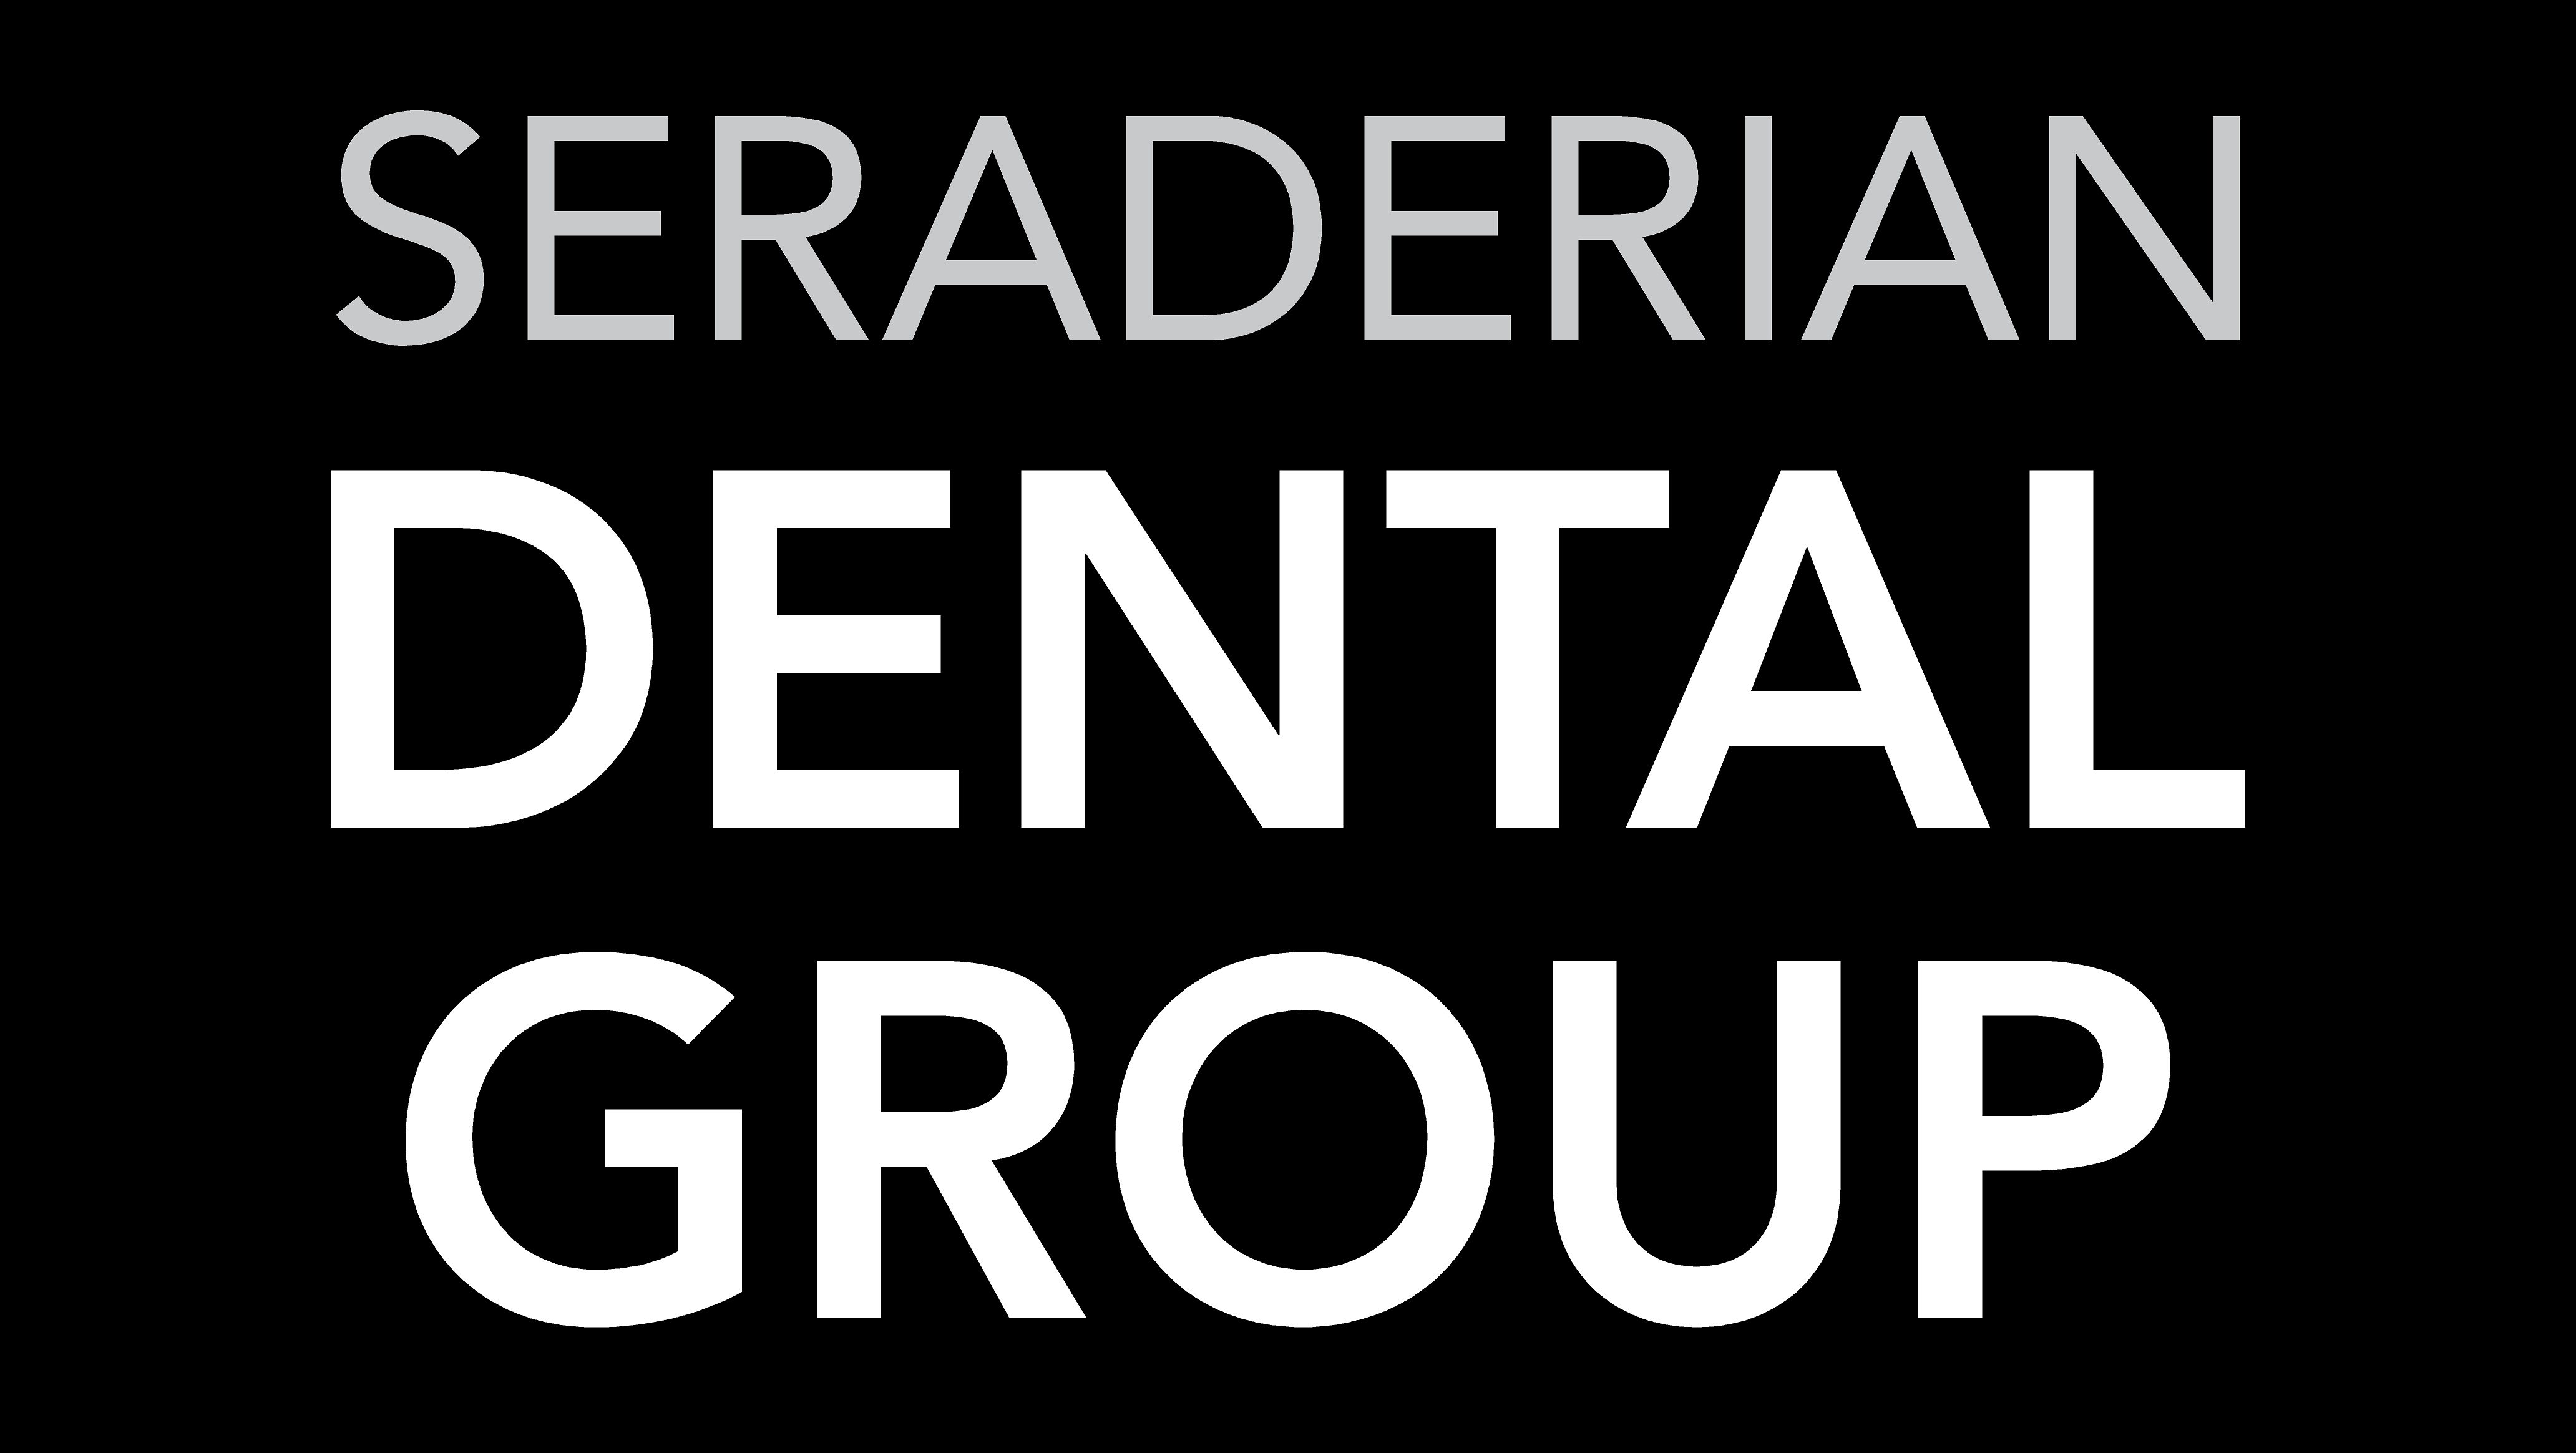 Seraderian Dental Group